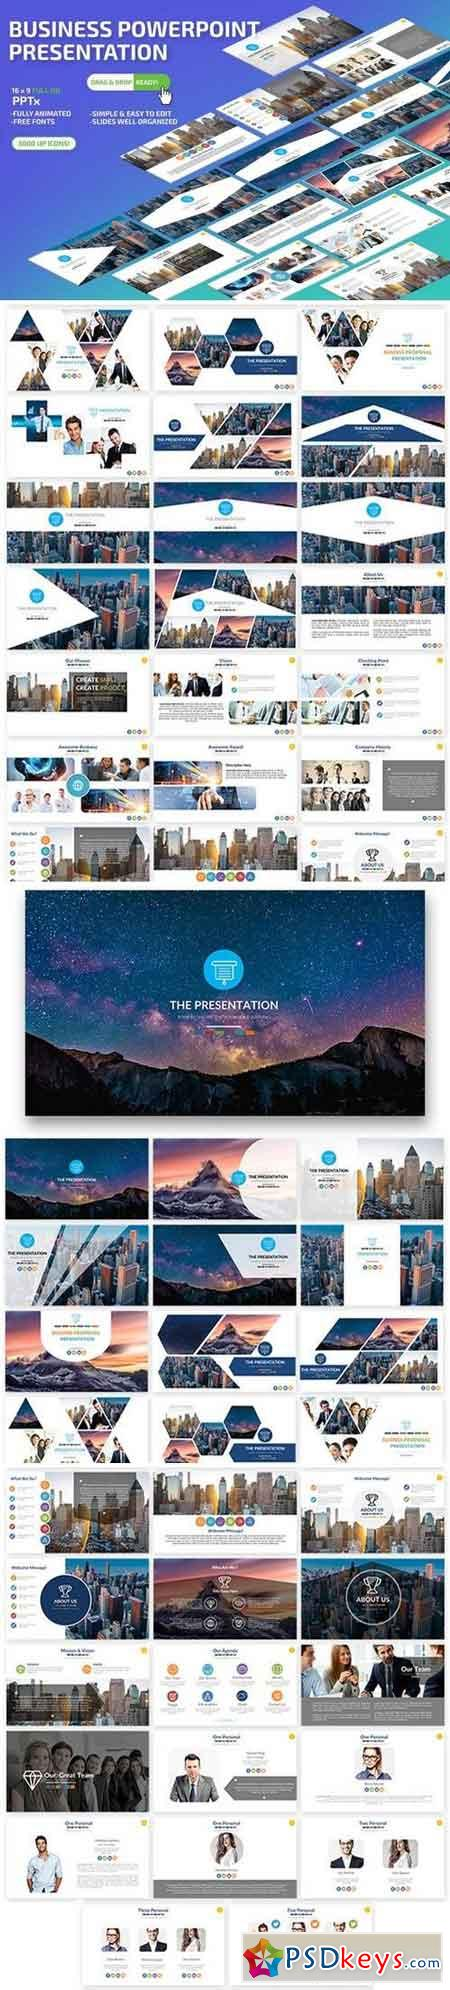 Business Powerpoint and Keynote Presentation Template